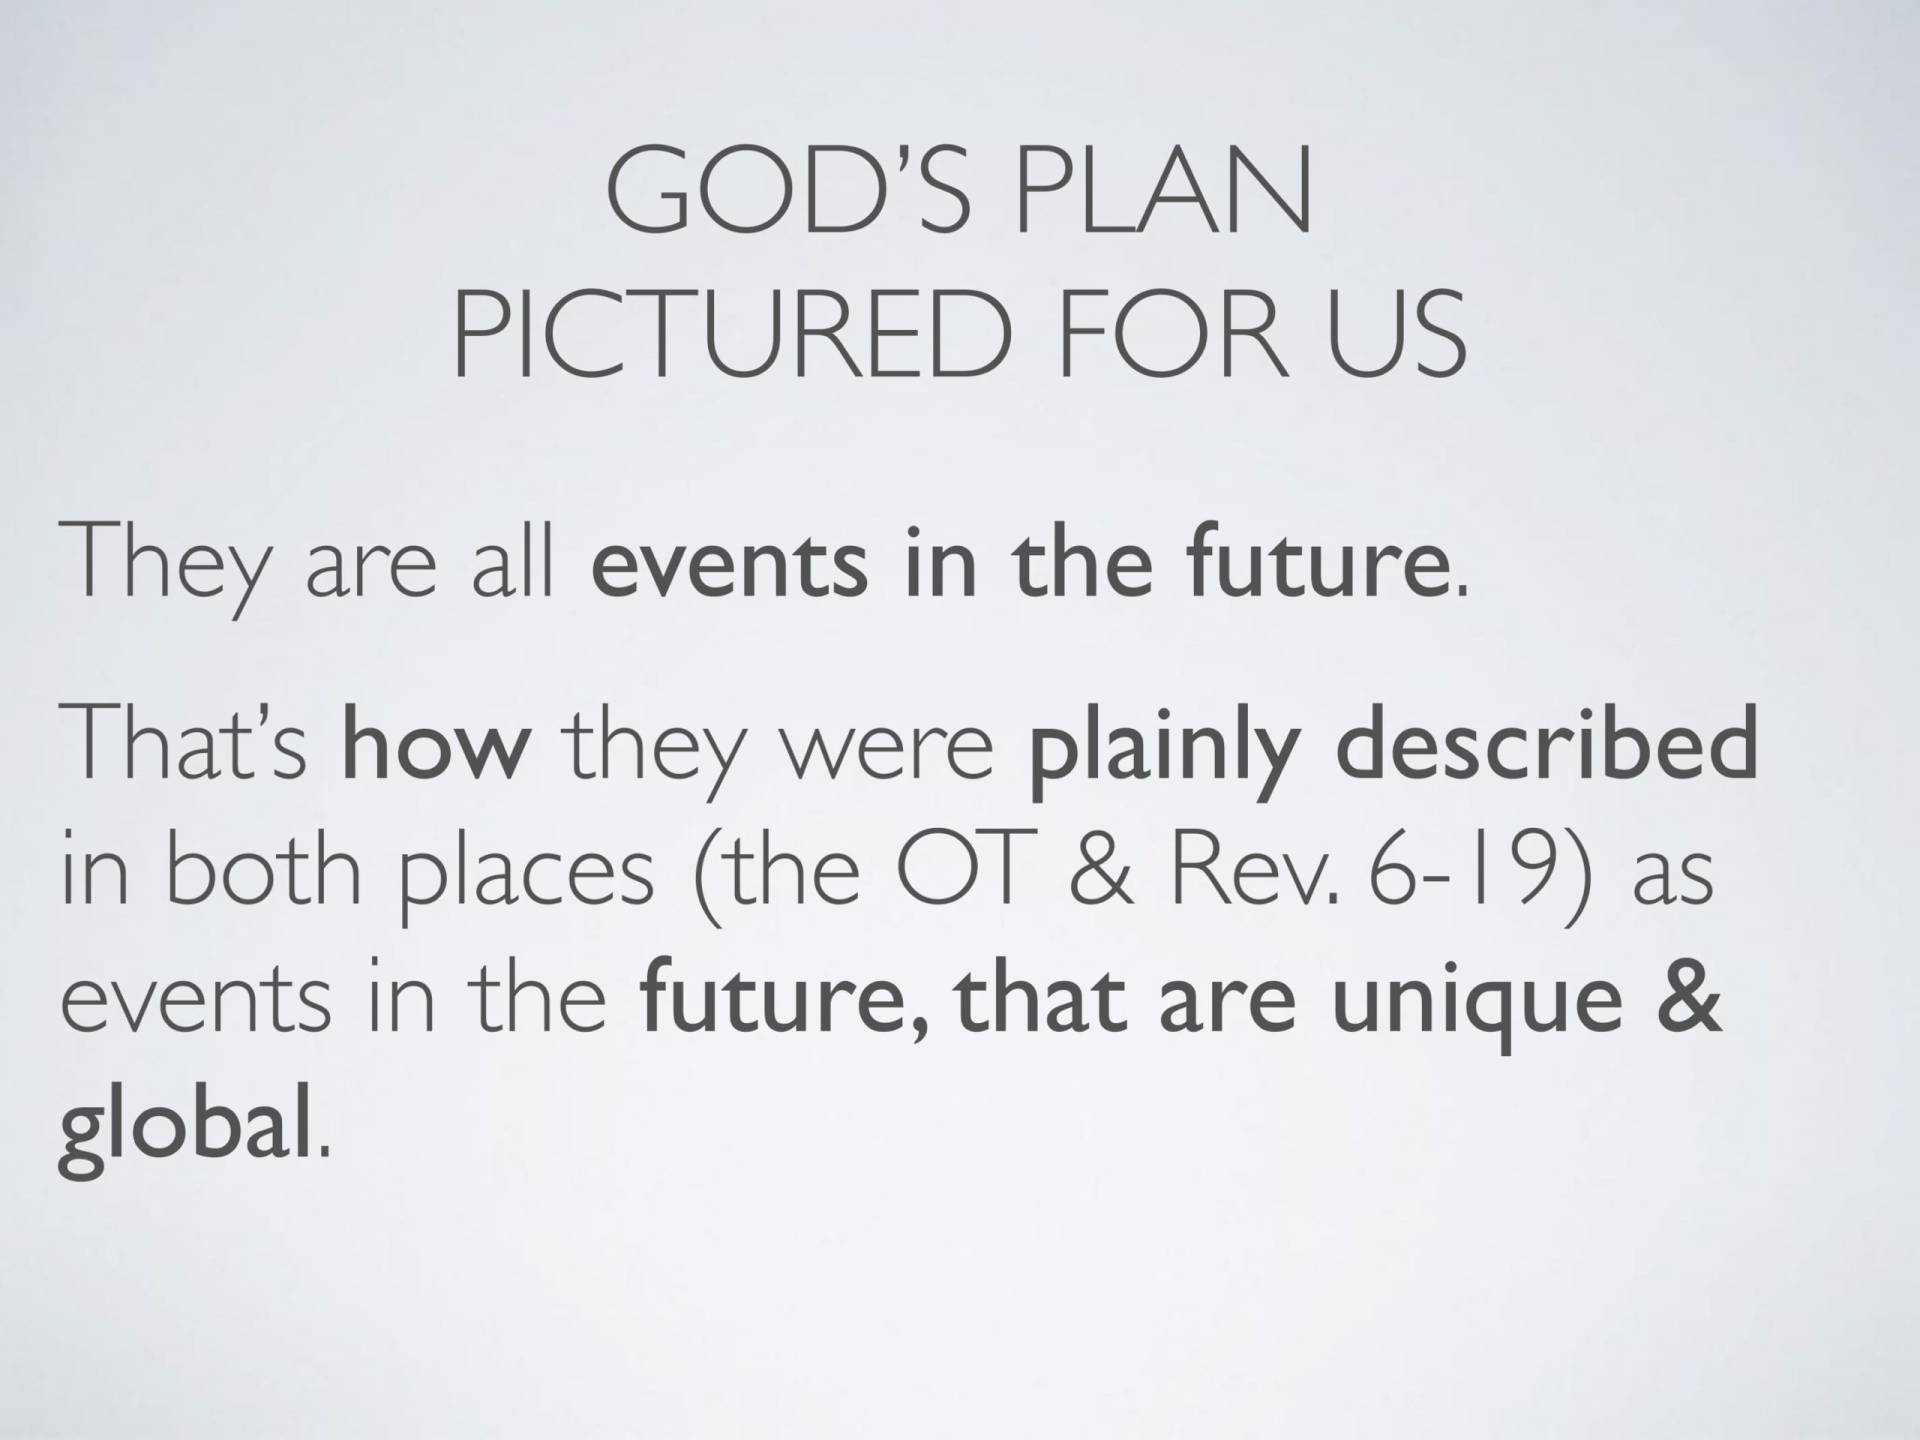 WOL2018 Hungary - 02 - Christ's Last Words To His Church - God's Planned Picture For Us (16)